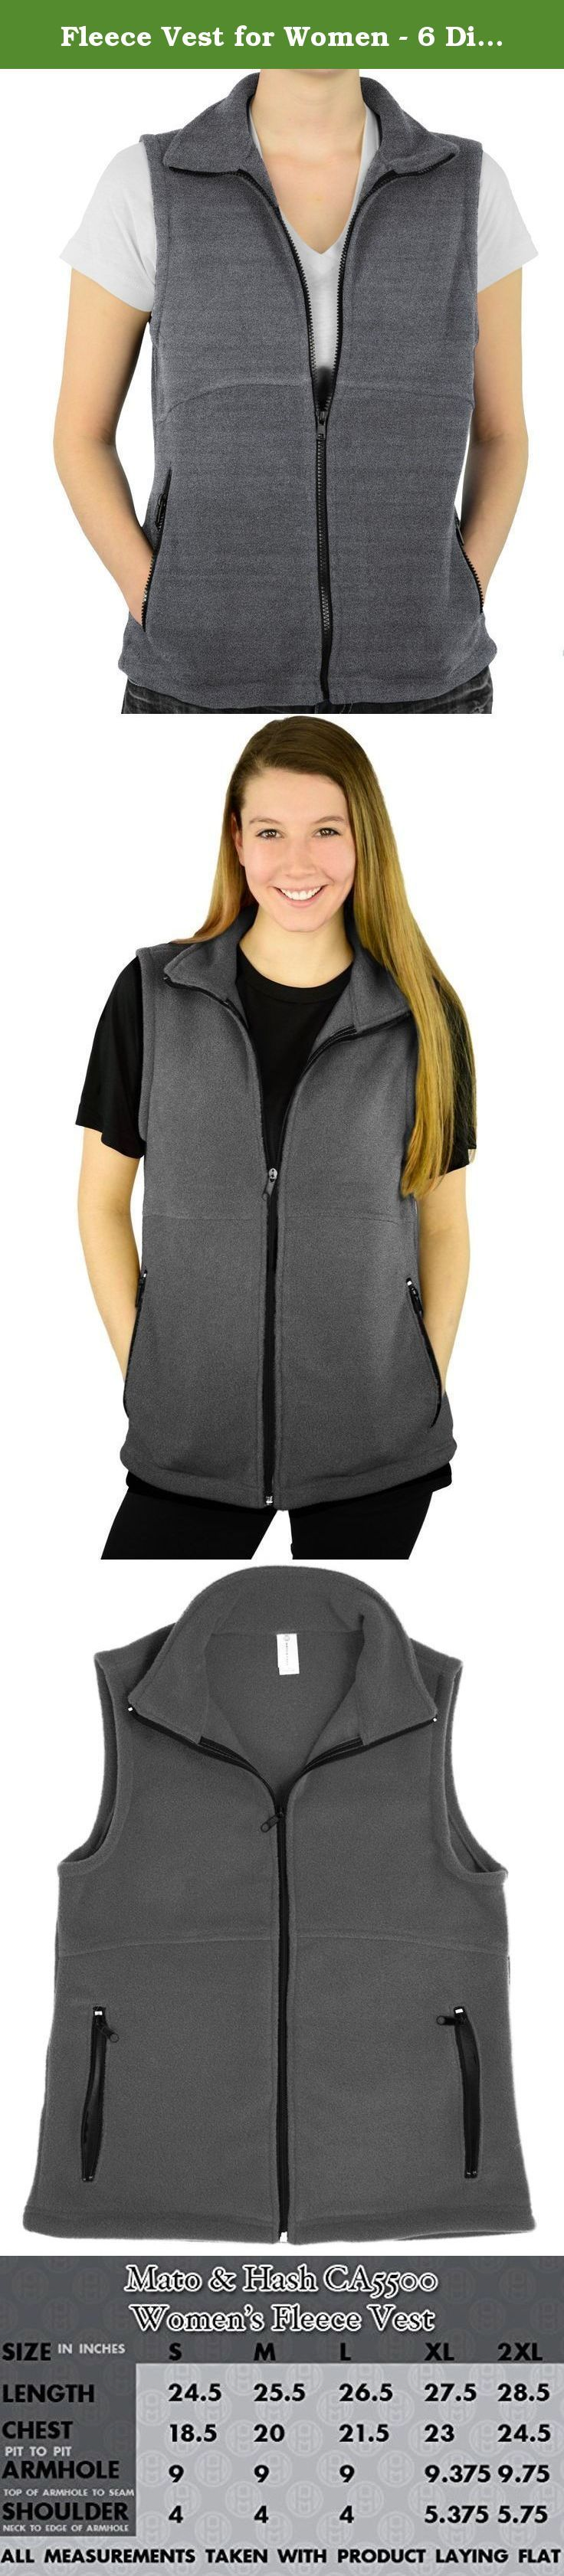 Fleece Vest for Women - 6 Different Colors Available - by Mato & Hash Charcoal Heather S. The Mato & Hash womens fleece vest is a must-have for your fashion wardrobe. This versatile womens vest is great almost year-round. With 6 different colors available, you will have no problem matching when layering your outfits for colder temperatures. The 100% polyester fleece provides comfort and warmth, without giving a bulky or boxy look. Wear this vest on your morning run, or stay comfortable at...